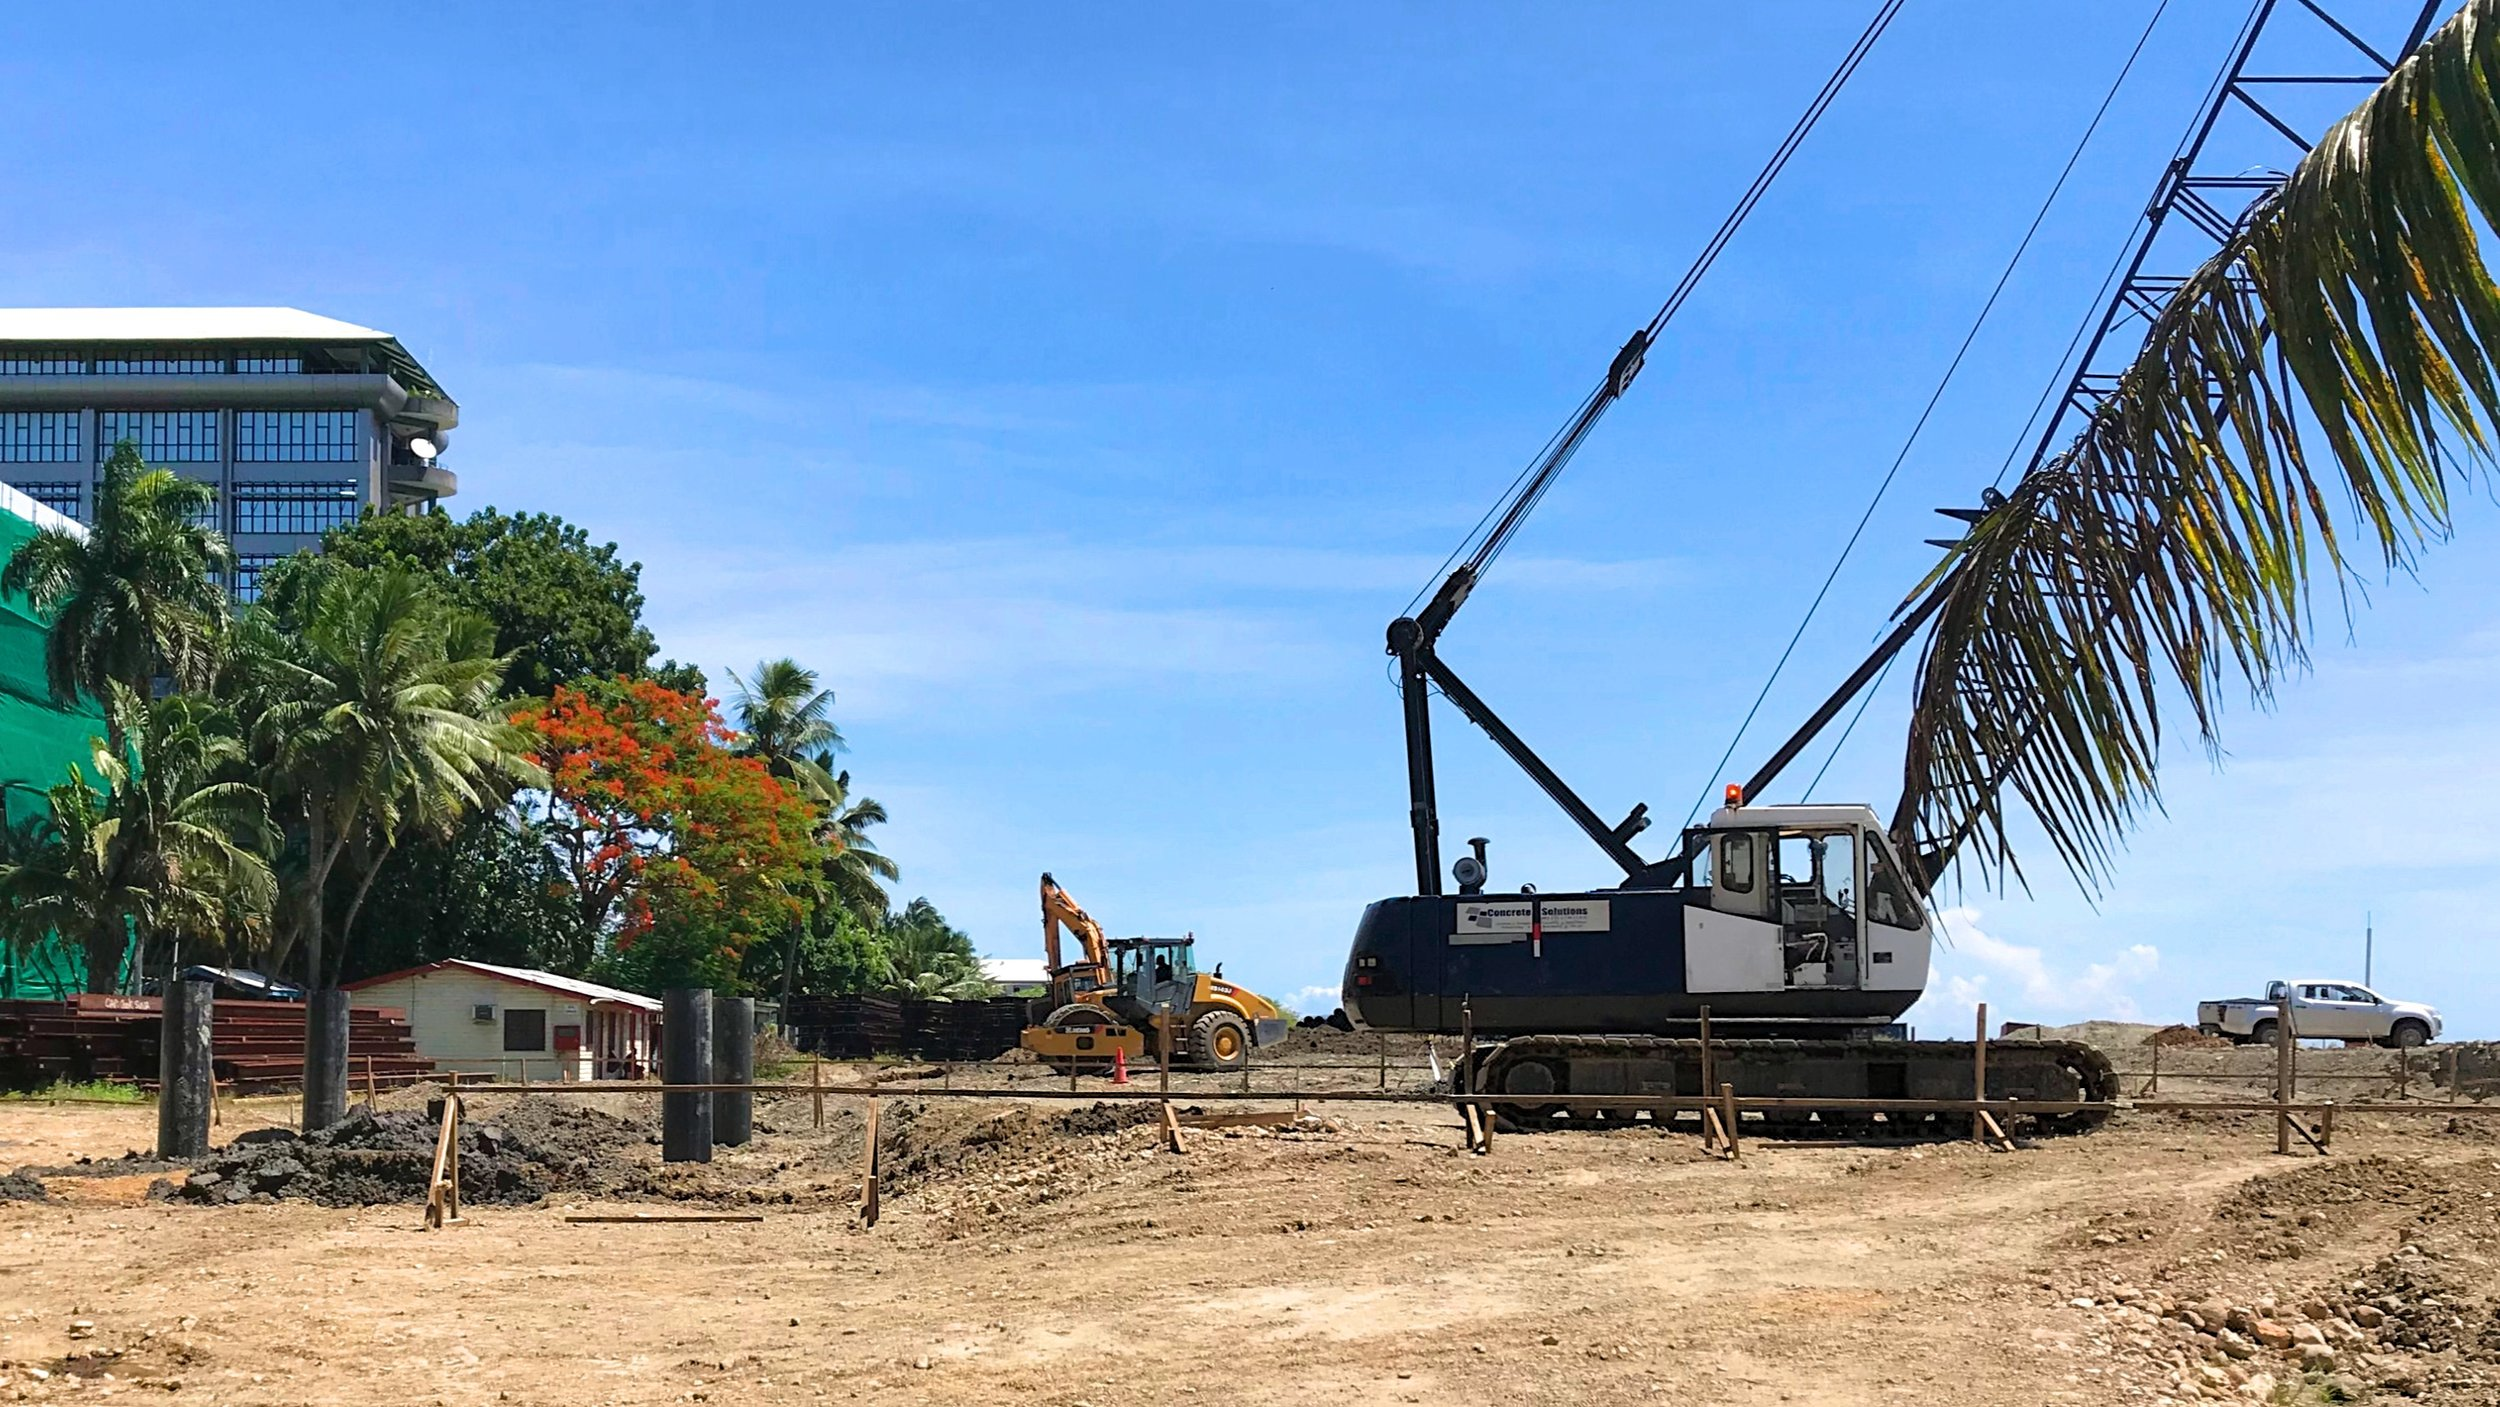 Piling works have commenced for one of the budget hotels in the Suva Foreshore project, Fiji.